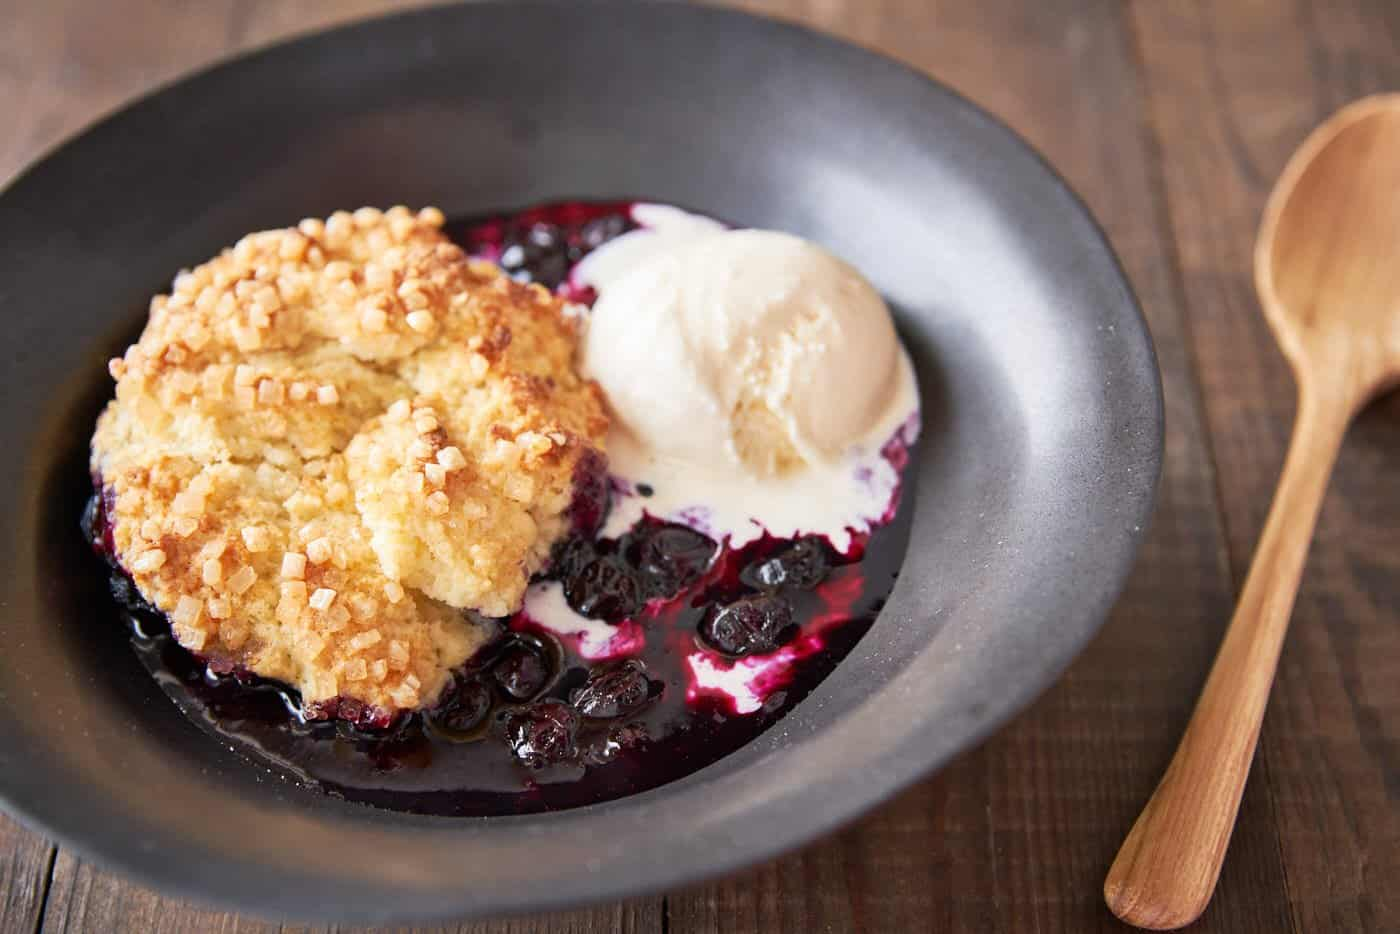 Loaded with sweet, plump blueberries and topped with buttery sugared biscuits, this easy Blueberry Cobber is the perfect summer dessert.